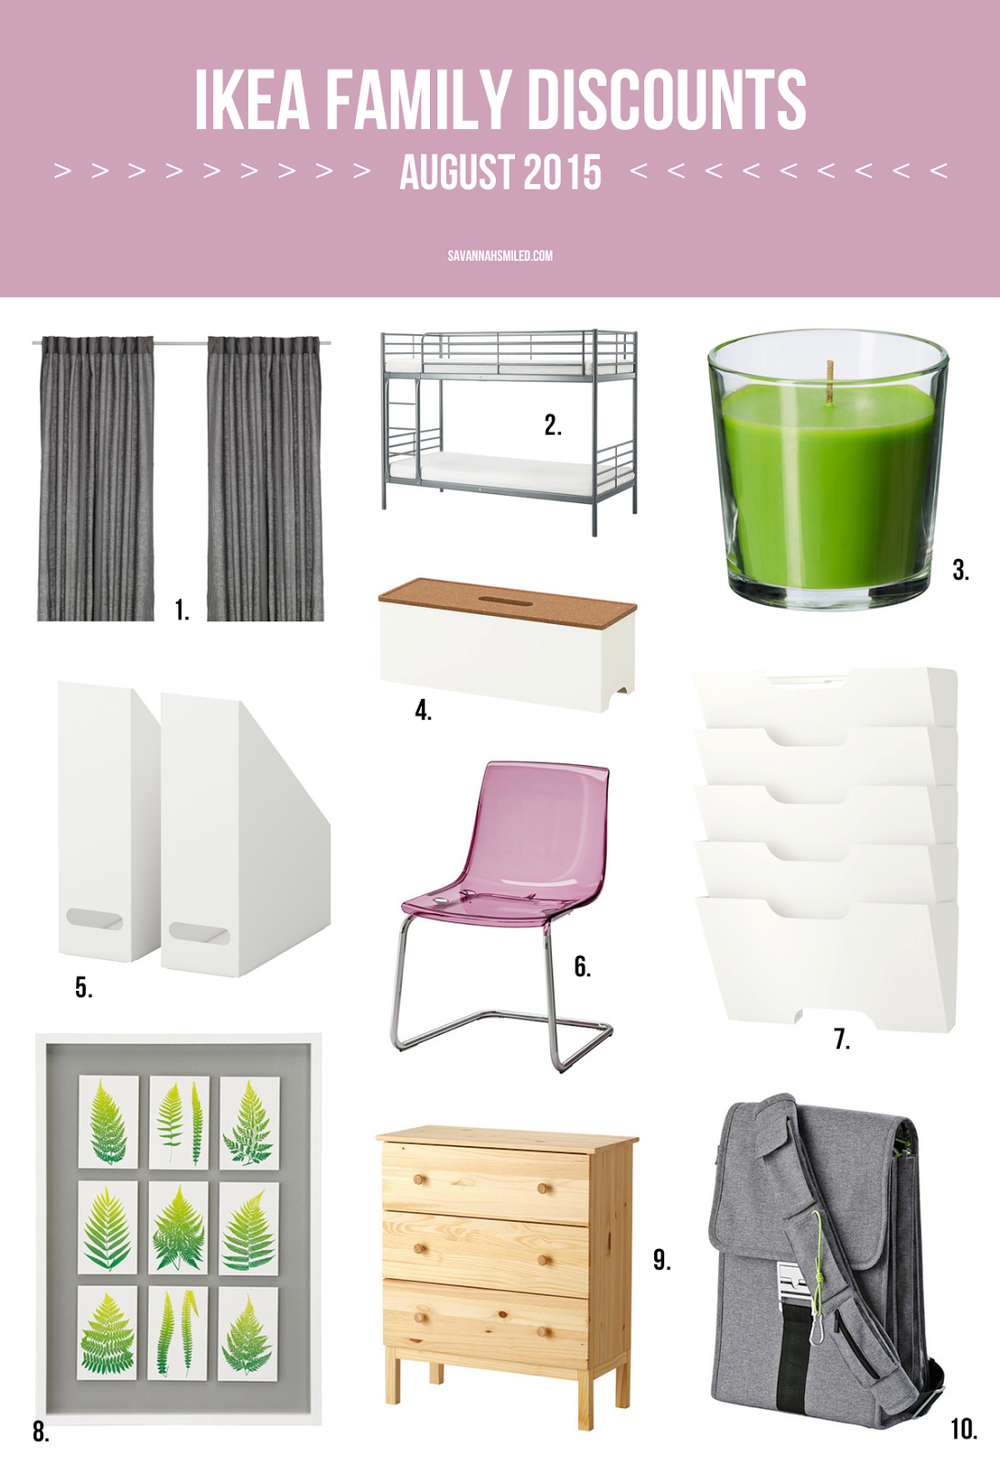 ikea-family-discount-items-august.png